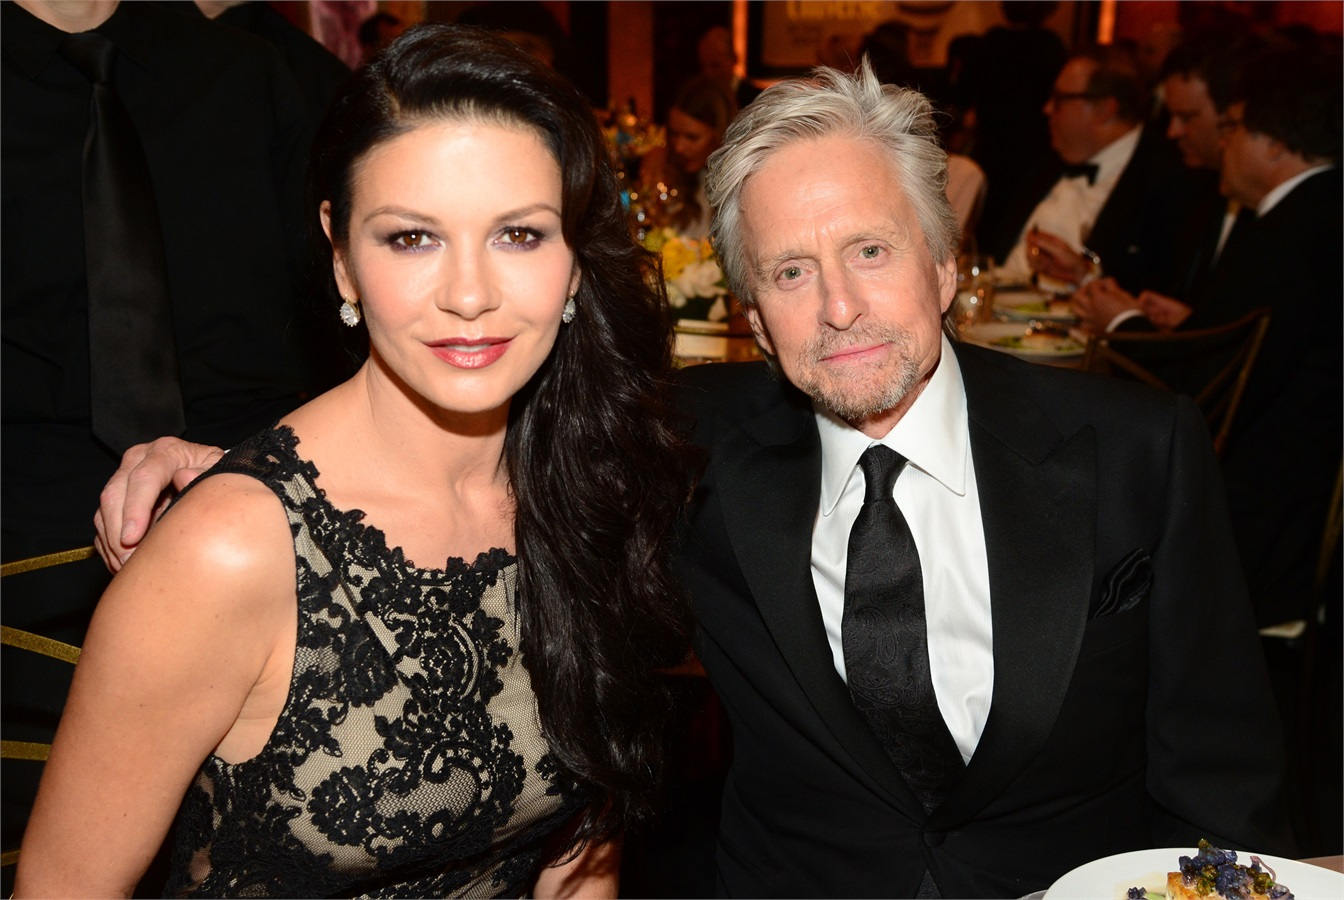 catherine-zeta-jones-rifatta-5